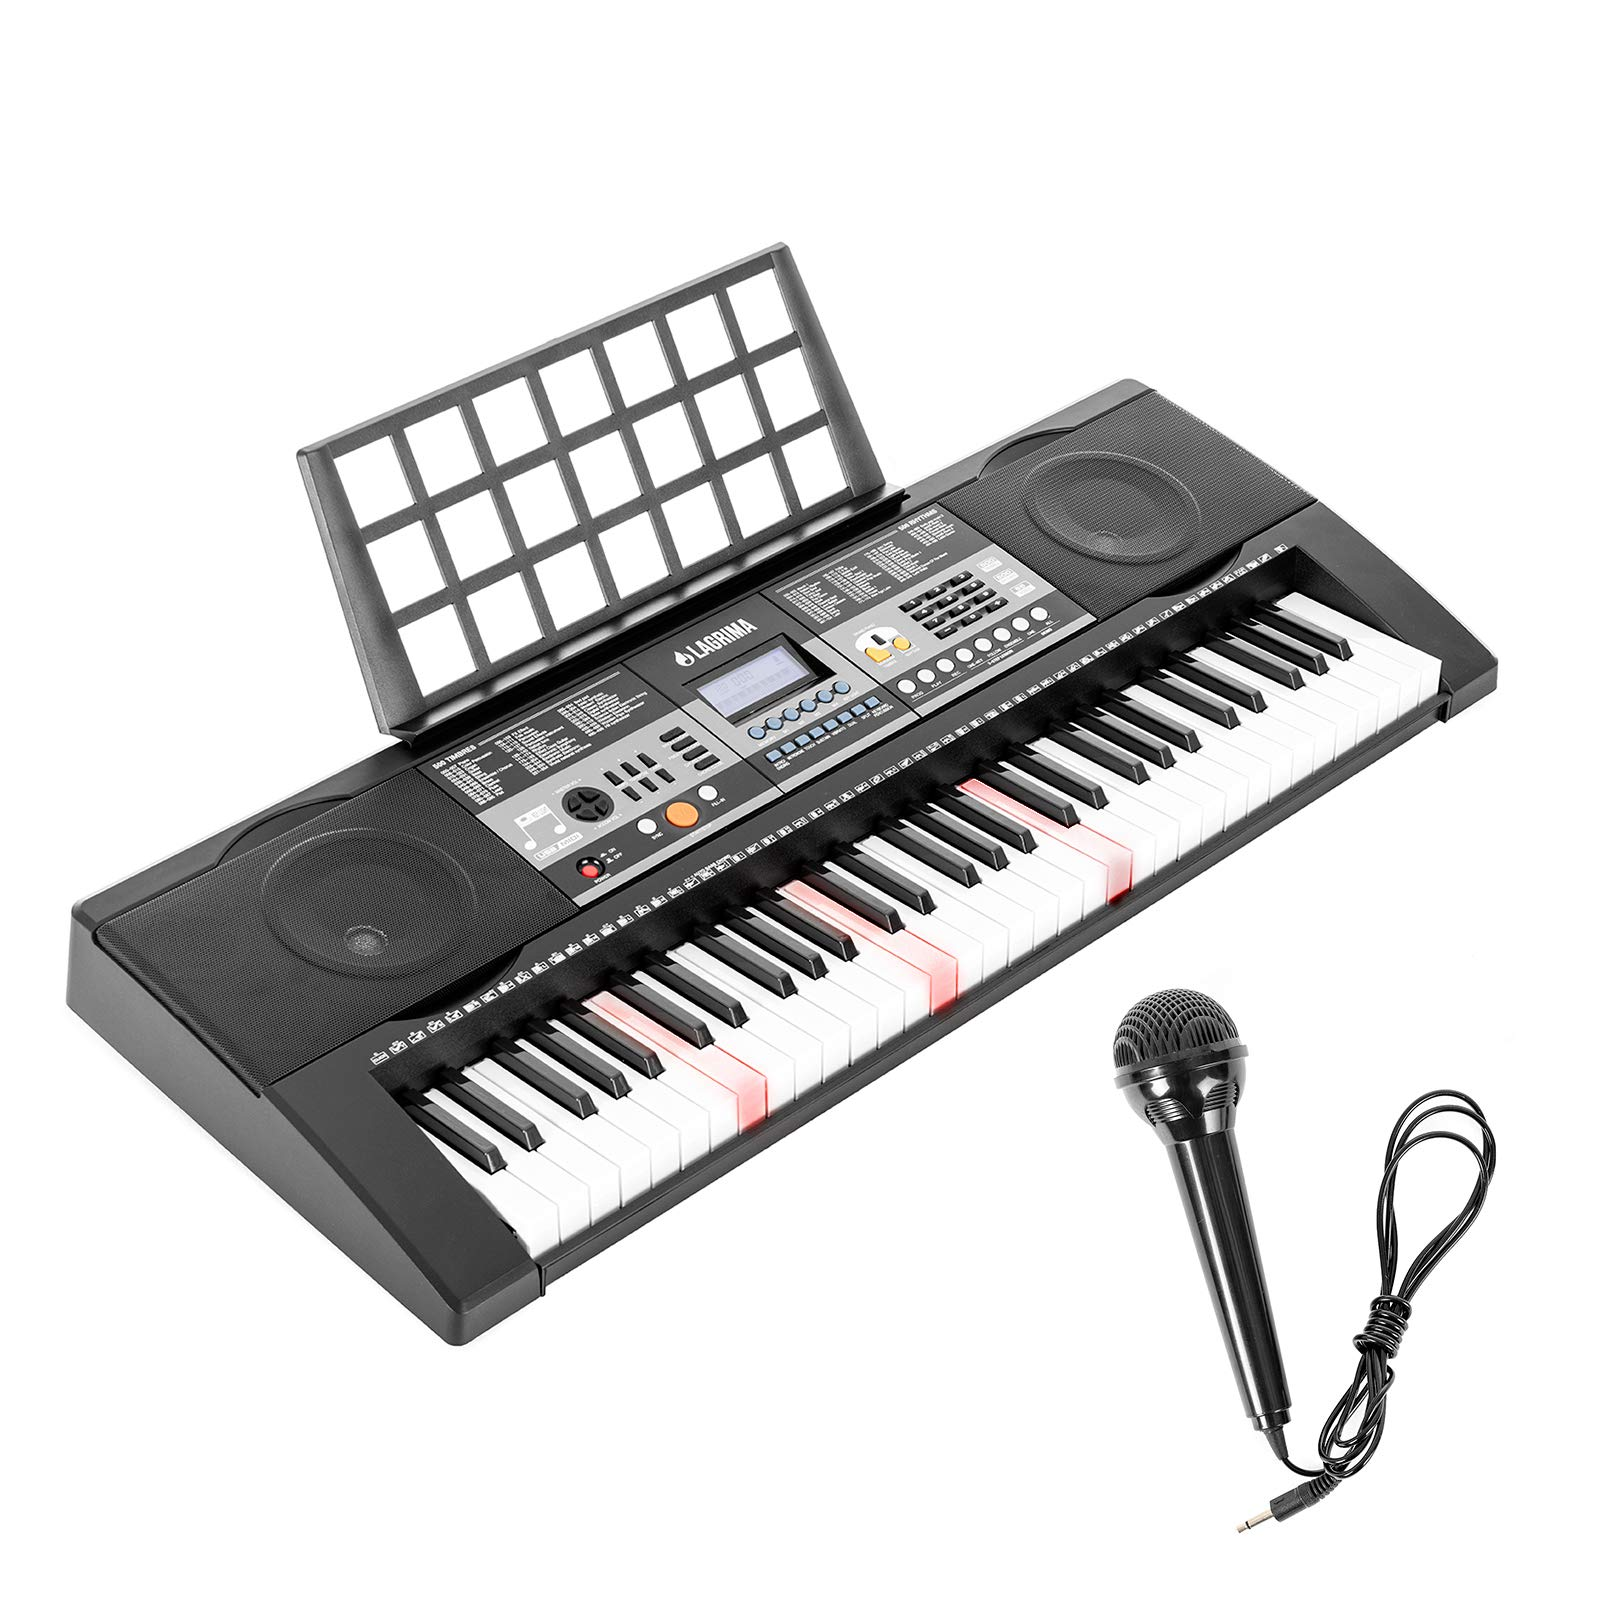 LAGRIMA LG-803 61-Key Electronic Keyboard Piano w/Light-Up Keys for Beginner(Kid & Adult), Lighted Portable Keyboard w/Micphone, Power Supply, Music Stand, Black by LAGRIMA